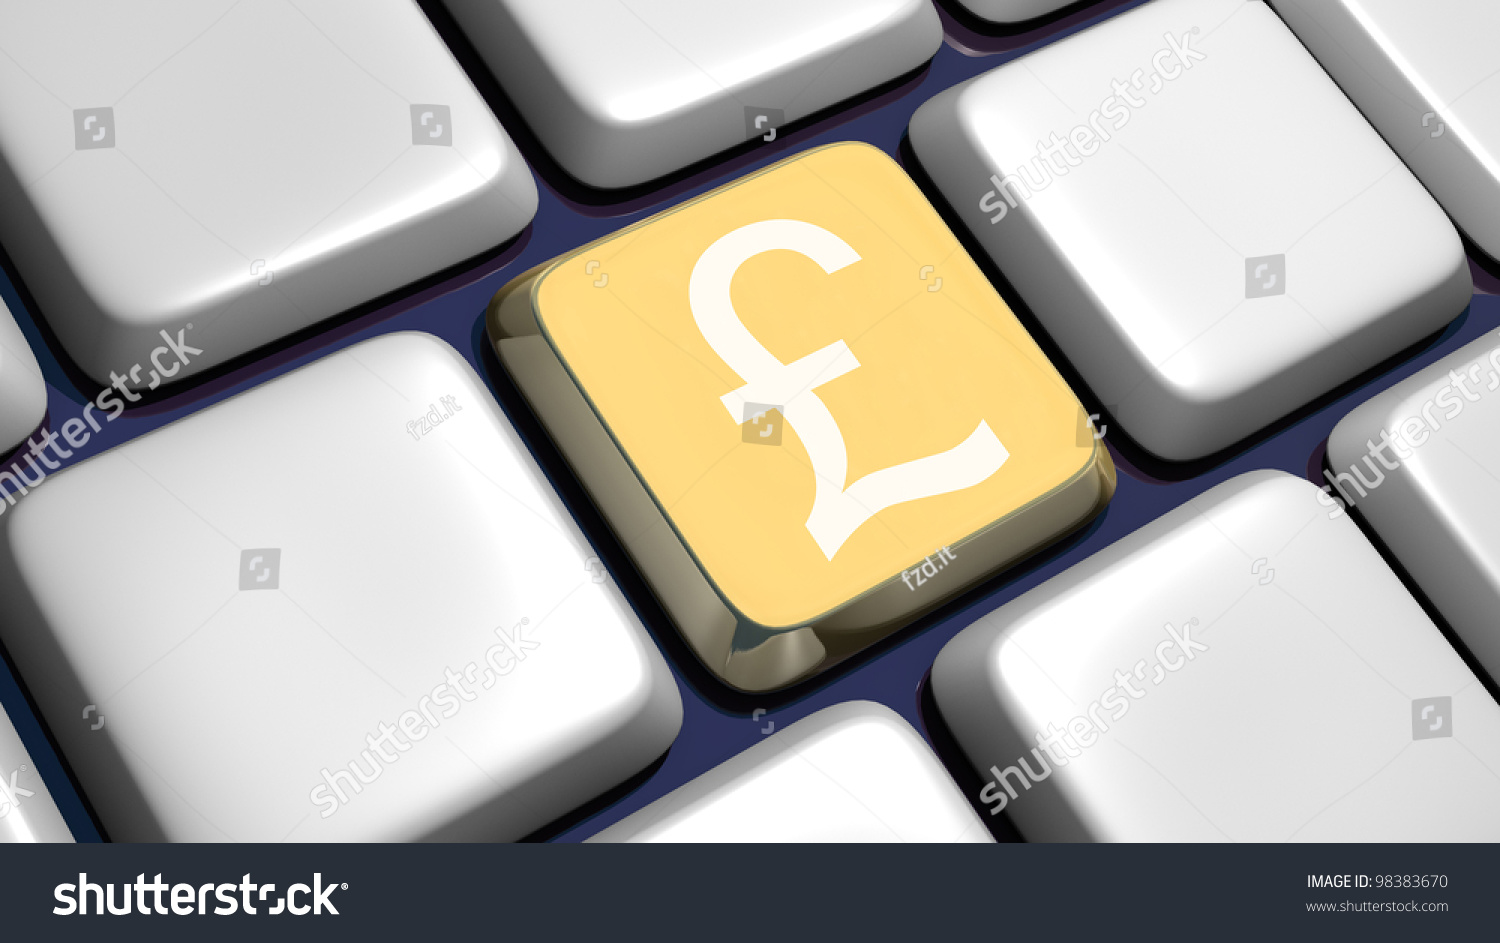 Keyboard Detail Pound Key 3 D Made Stock Illustration 98383670